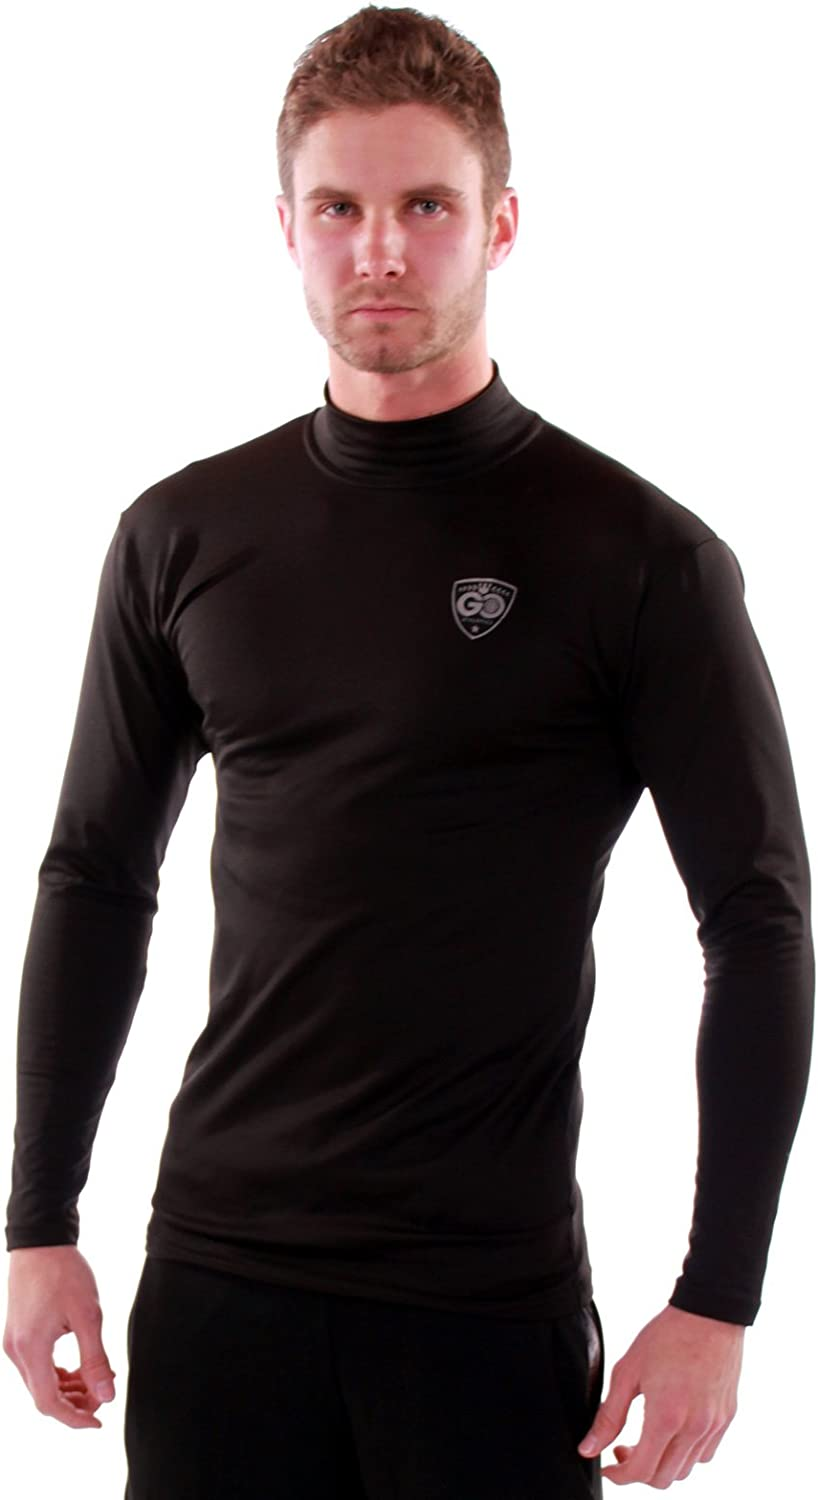 Go Athletic famous Outstanding Apparel Men's Long Sleeve Thermal fo Shirt Underwear